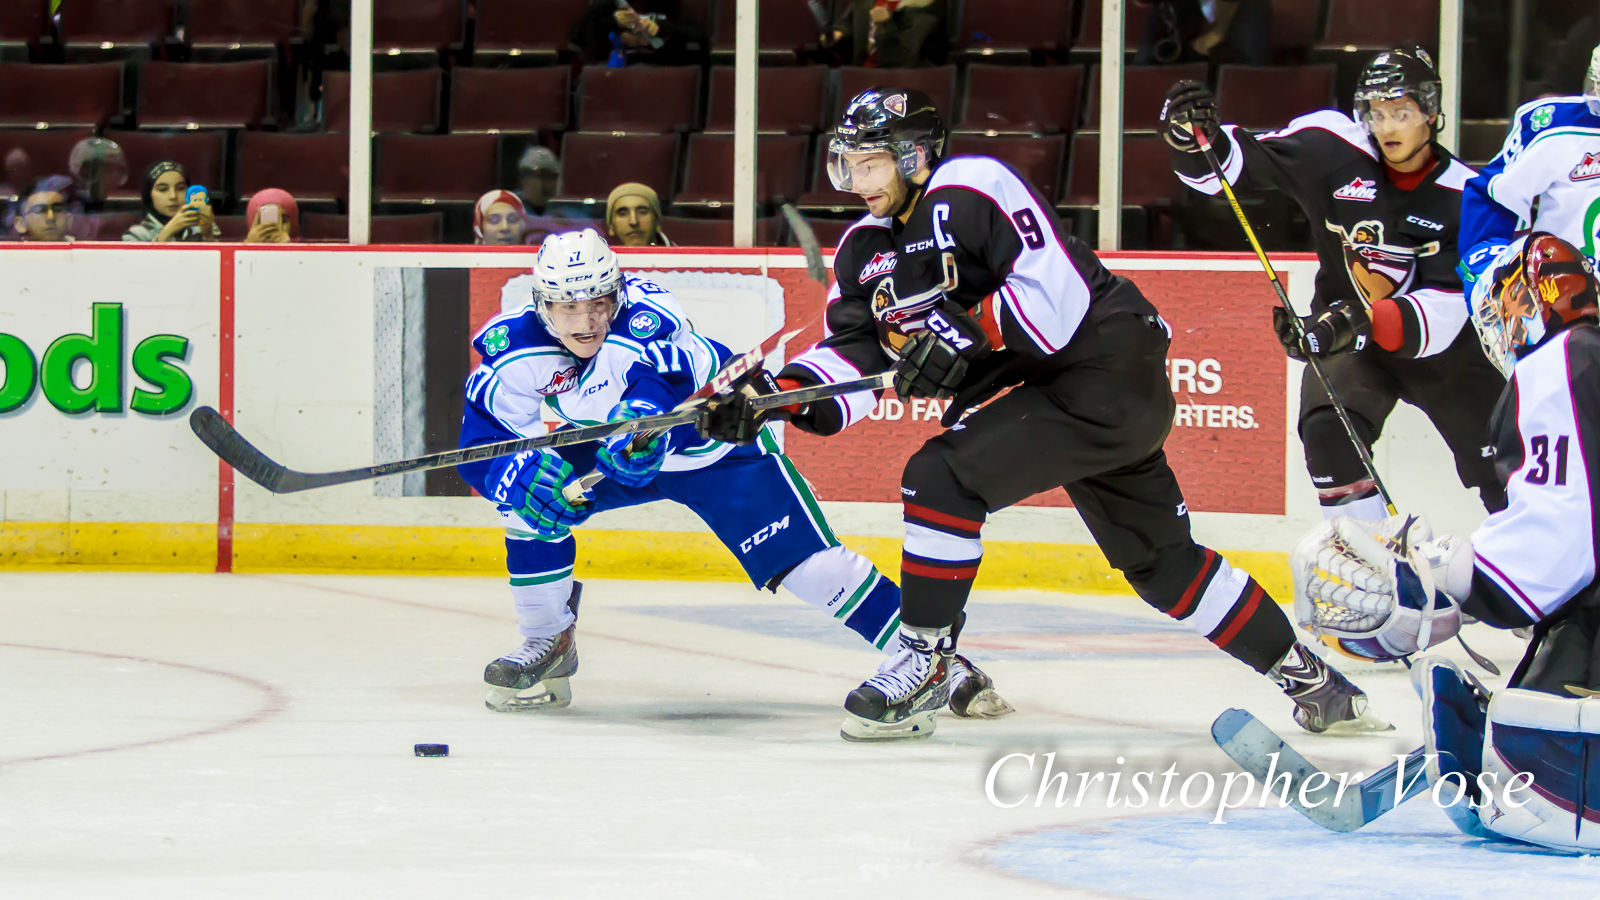 2014-10-03 Tyler Steenbergen and Dalton Sward 2.jpg